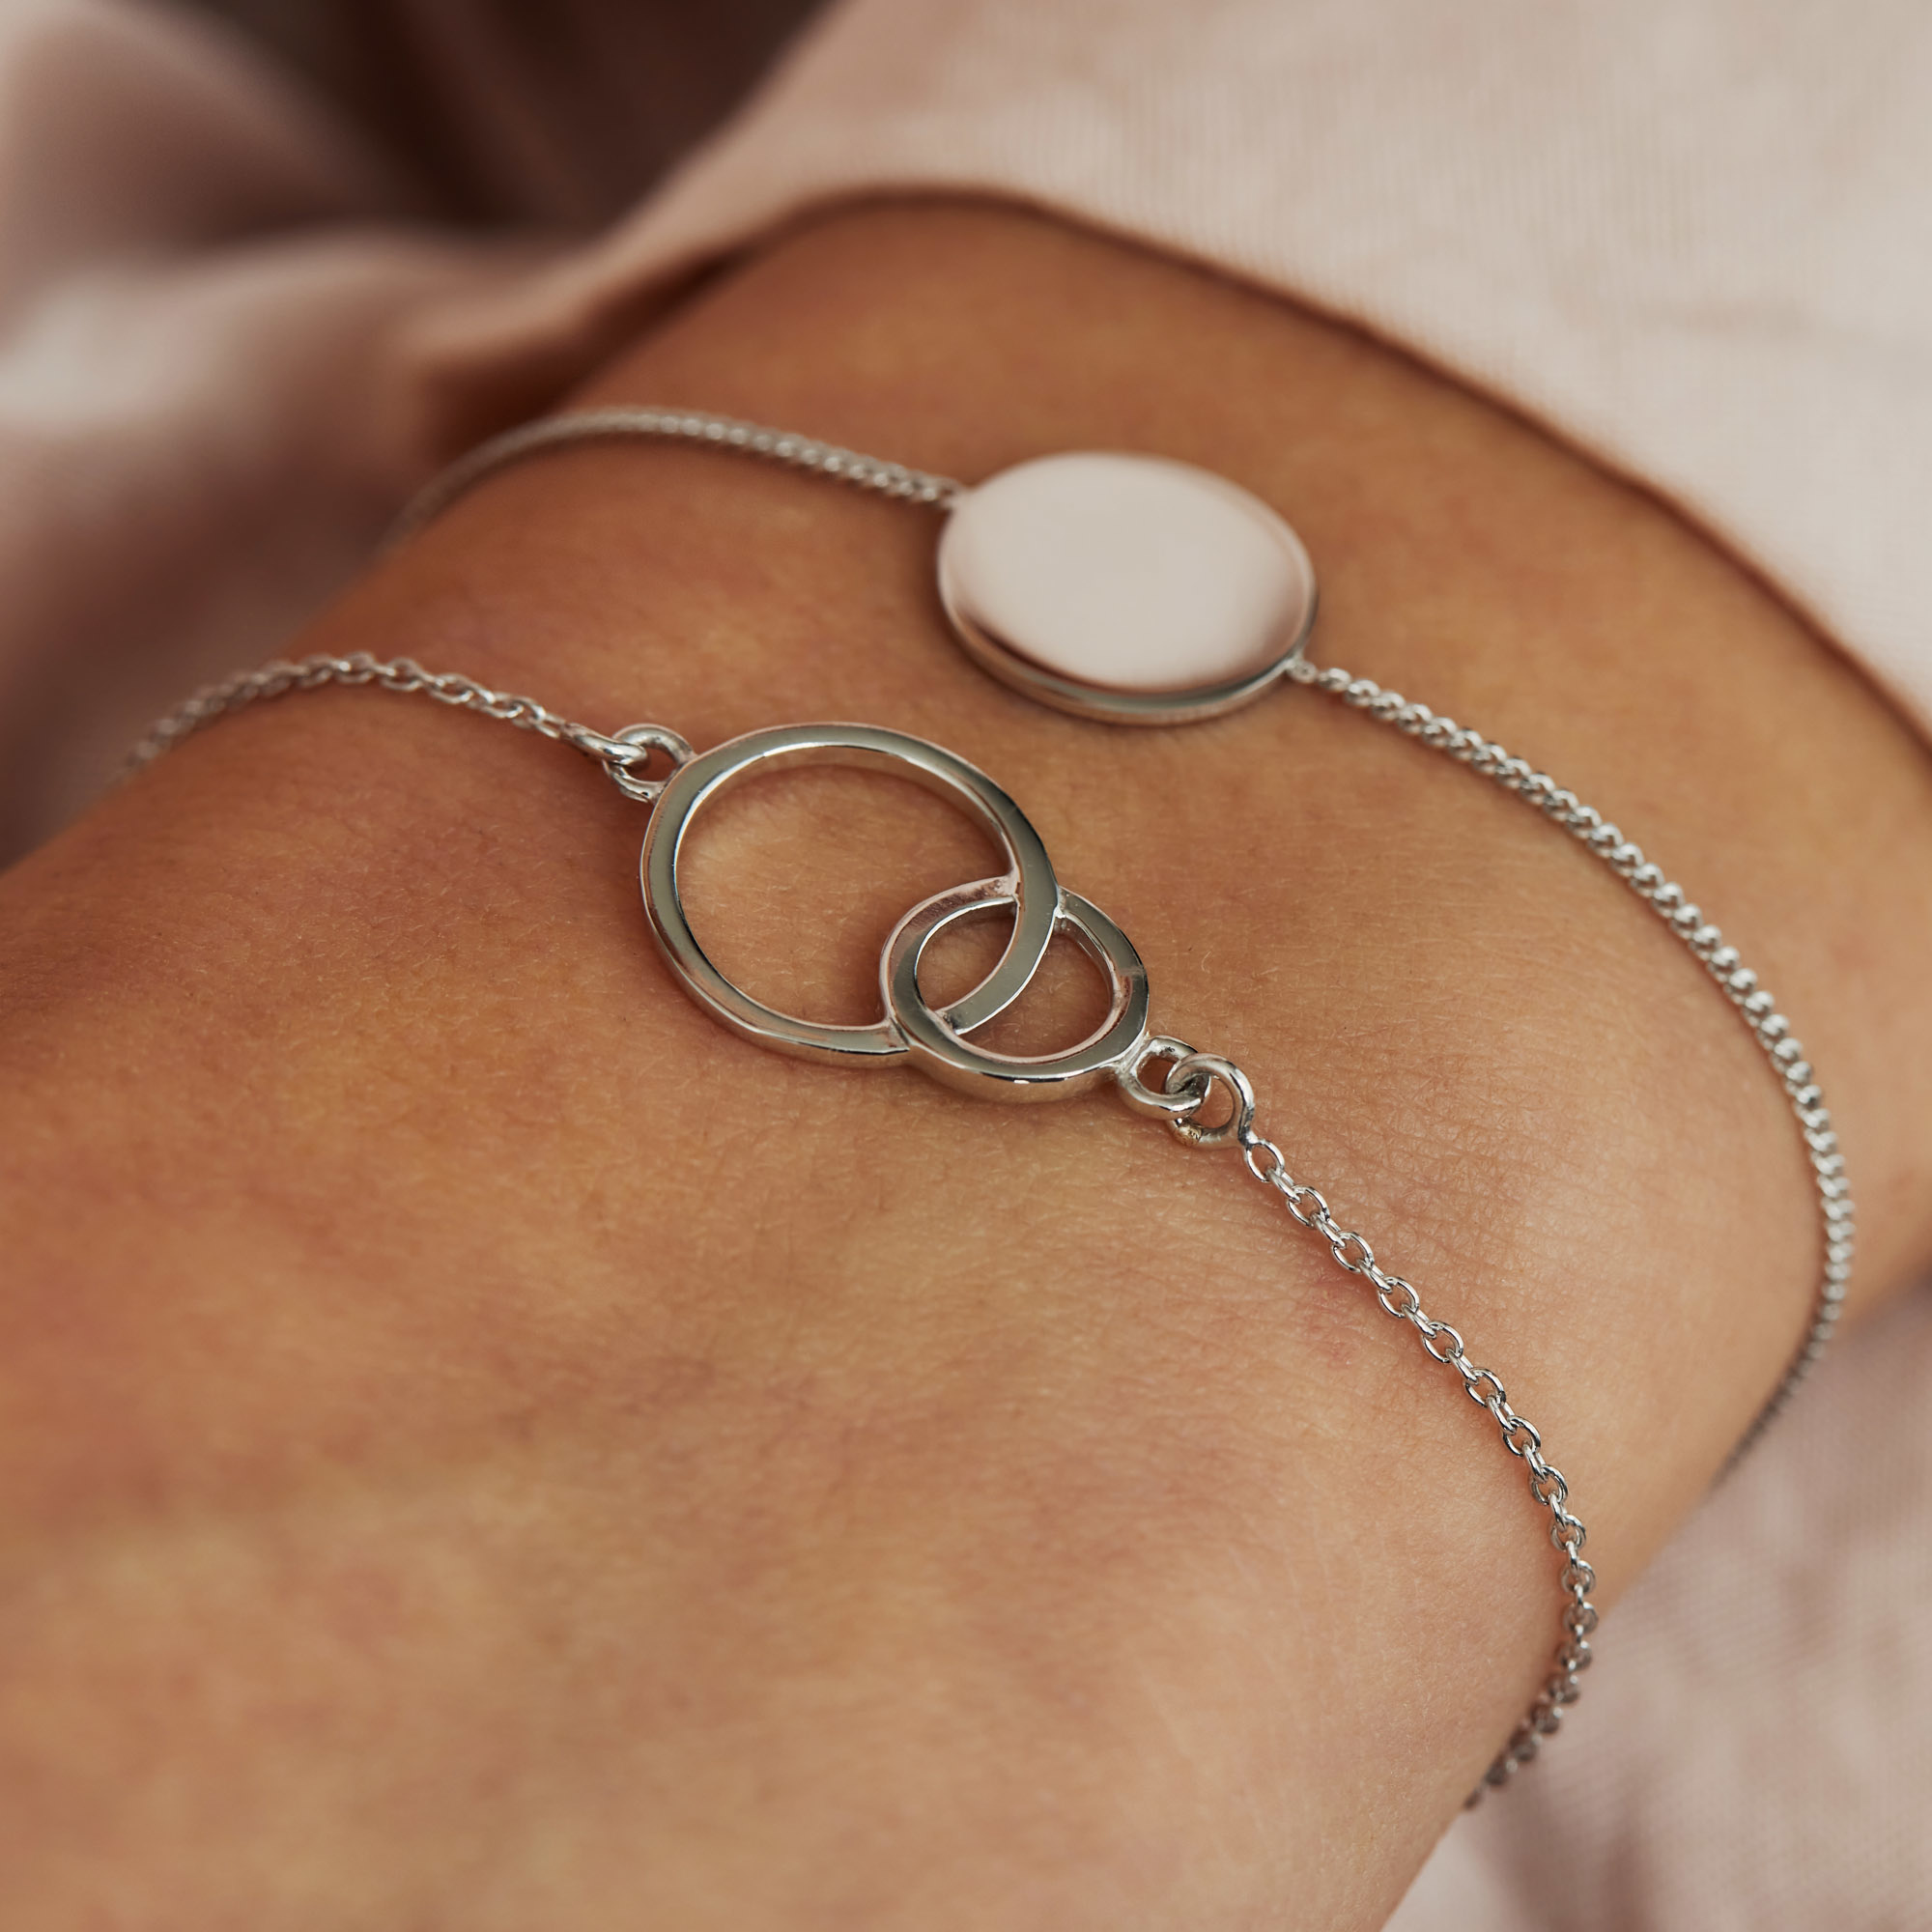 Selected Jewels Zoé armband i 925 sterling silver